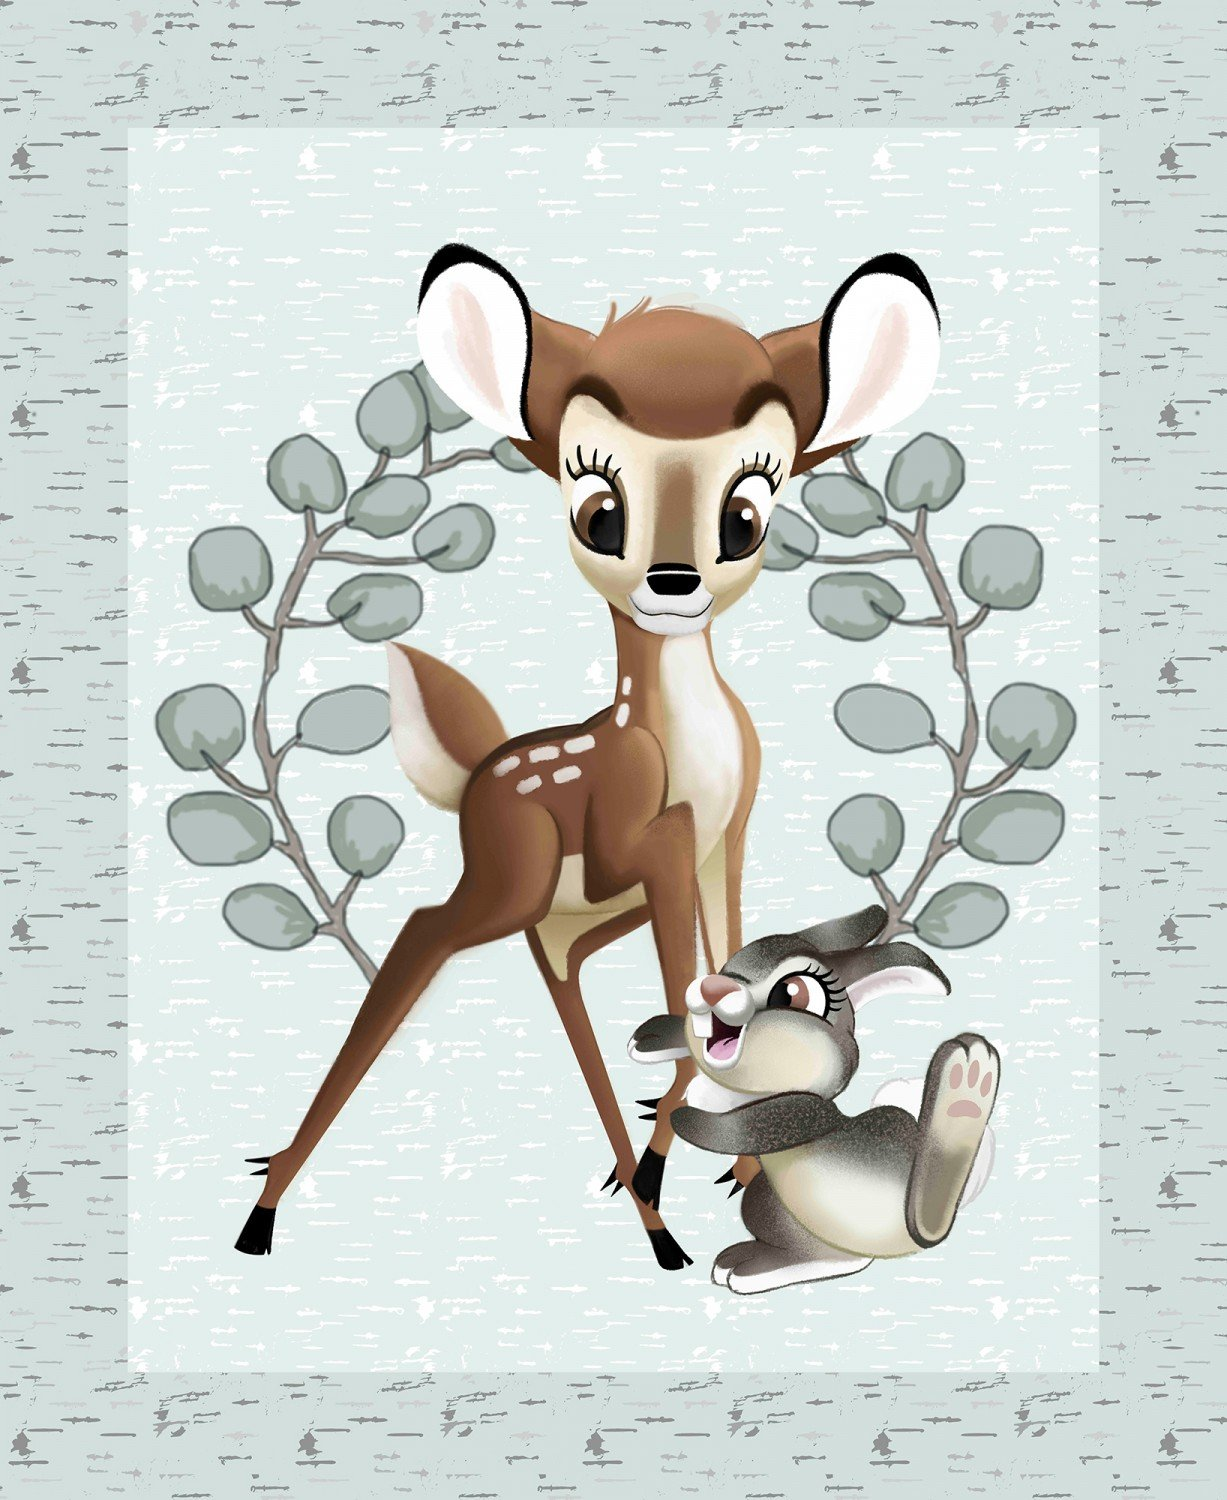 Disney Bambi and Thumper Children's Fabric Panel 36 x 43 Inches